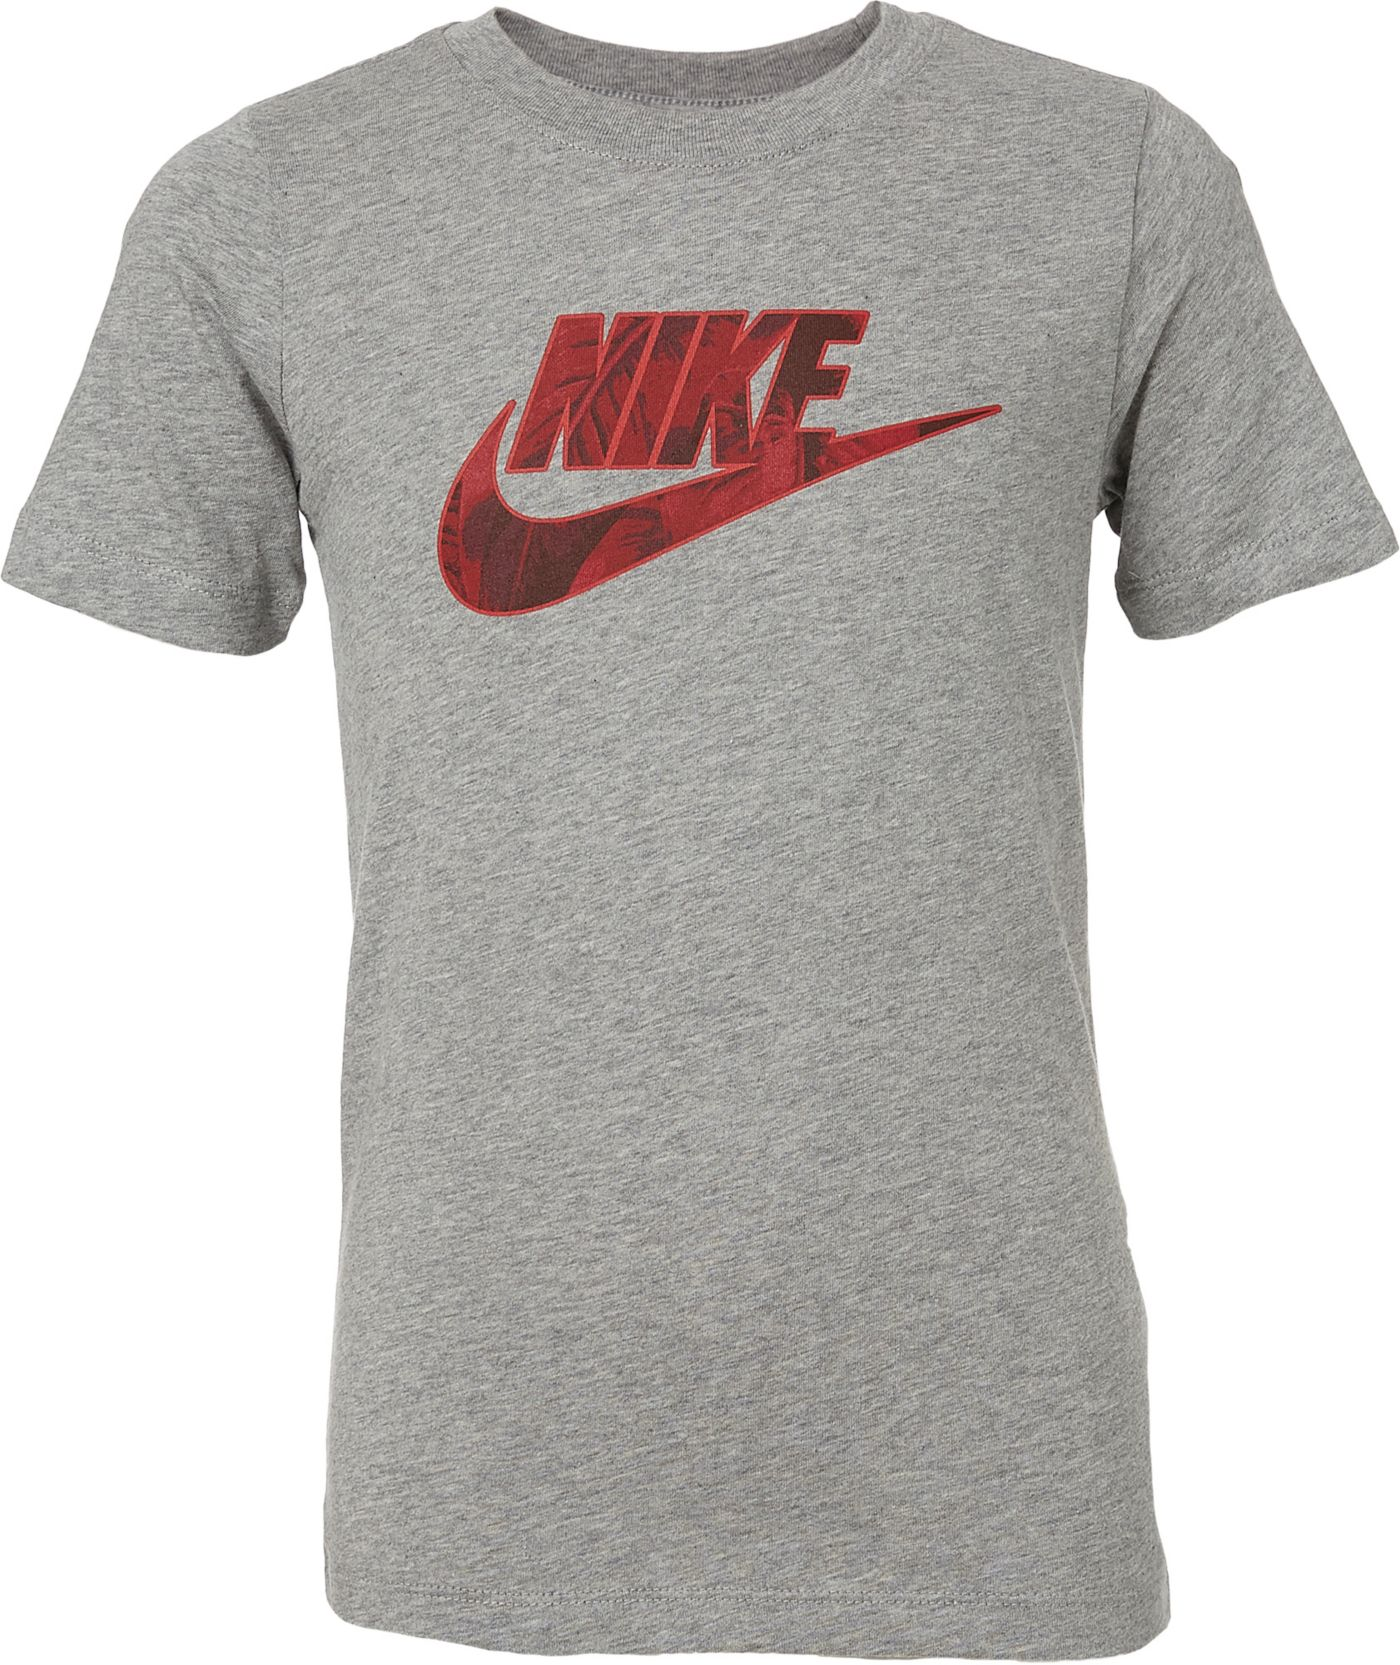 Nike Boys' Sportswear Futura Fill Palm Graphic Tee